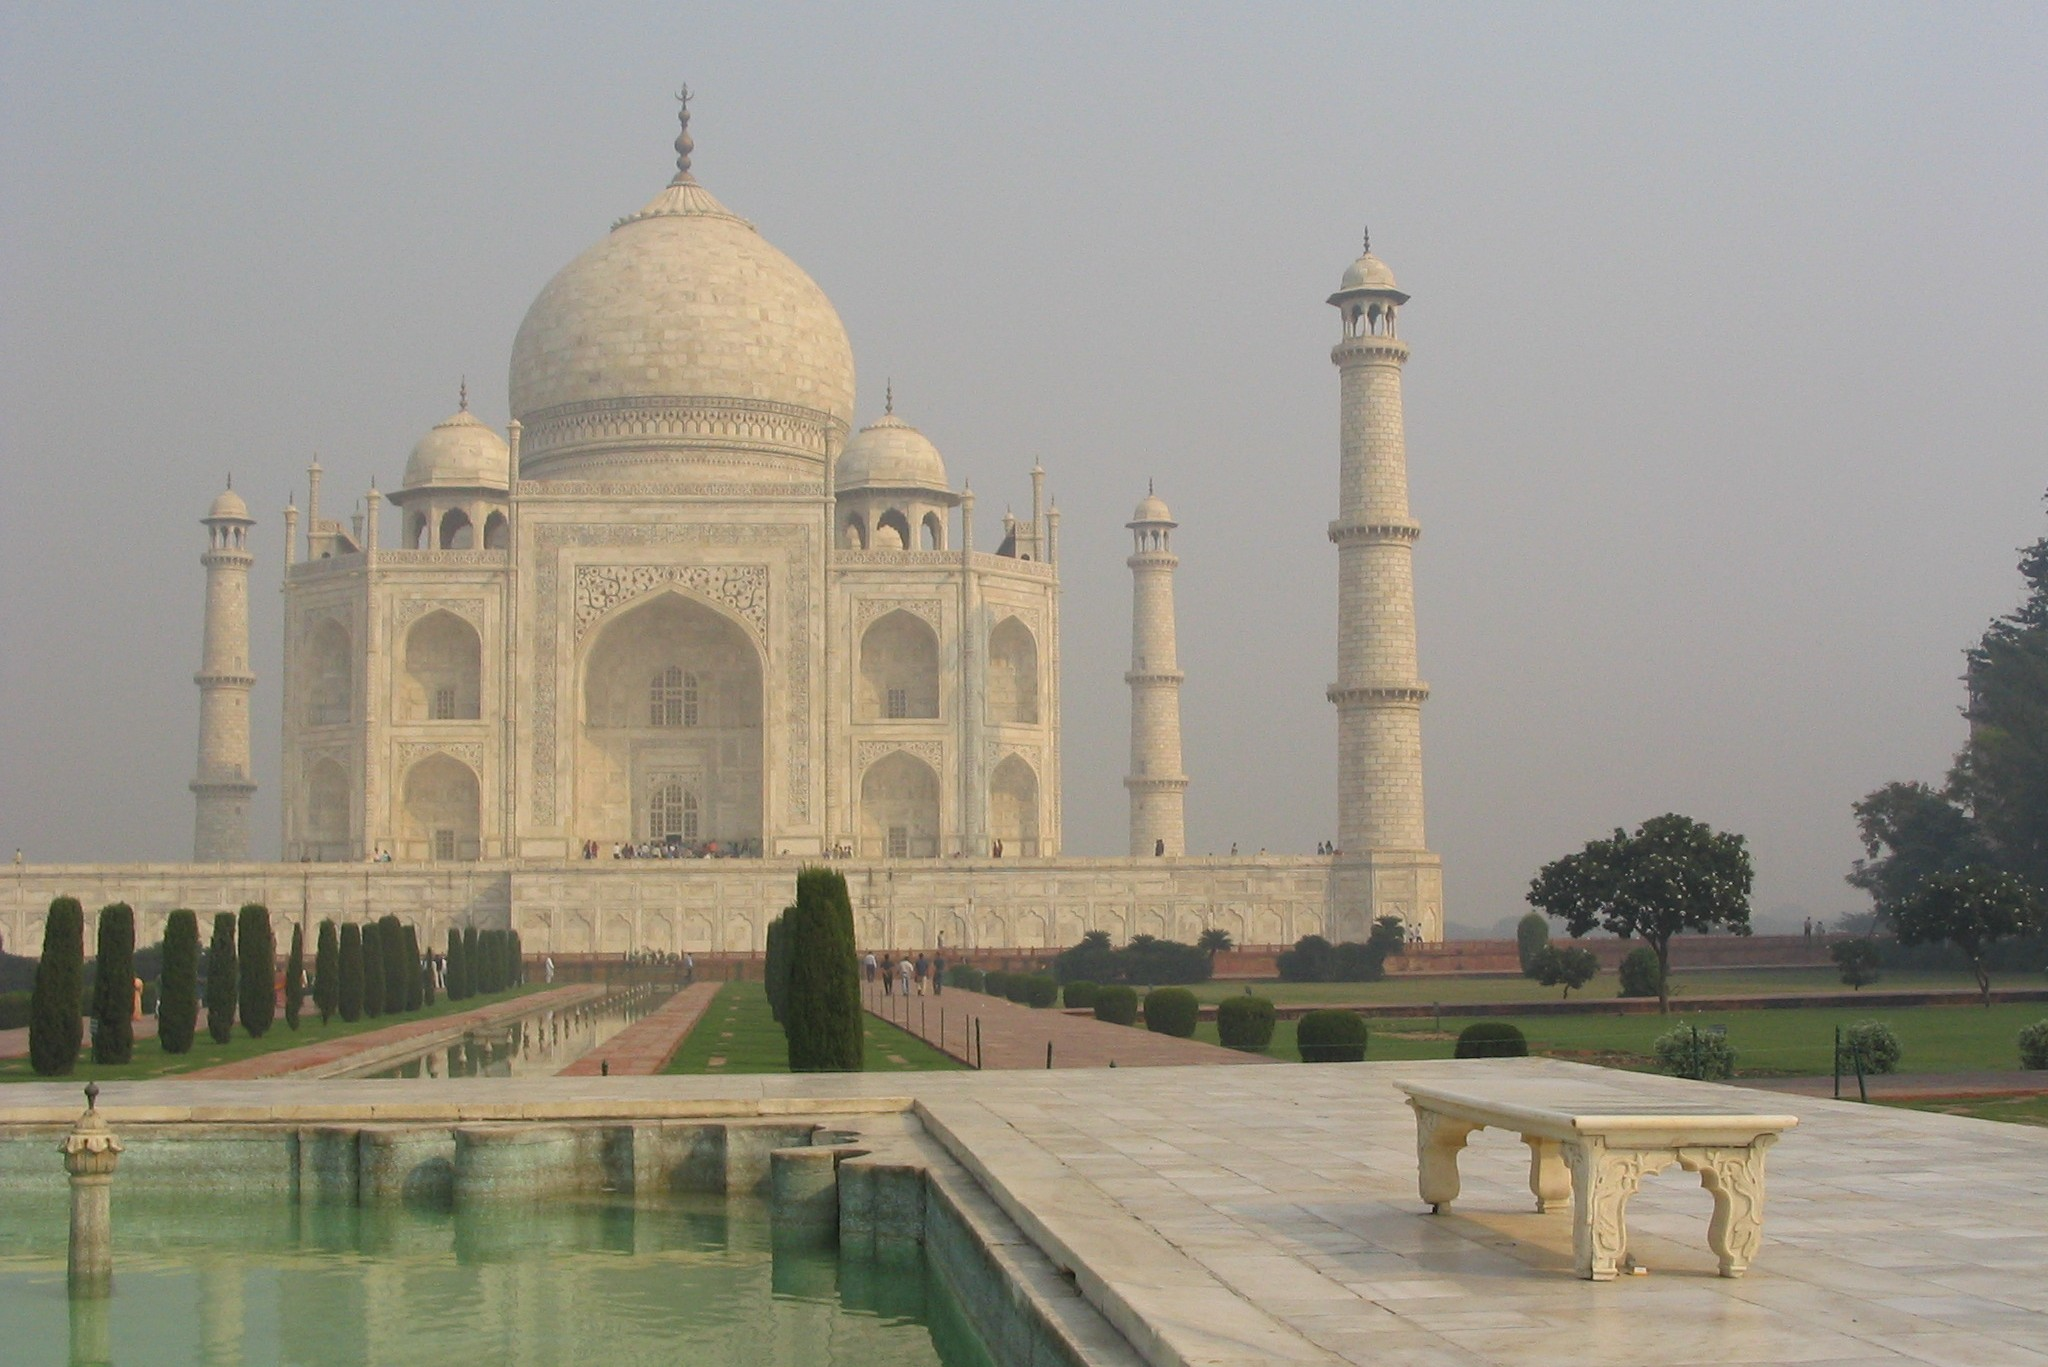 Taj Mahal without tourists worldtrip India